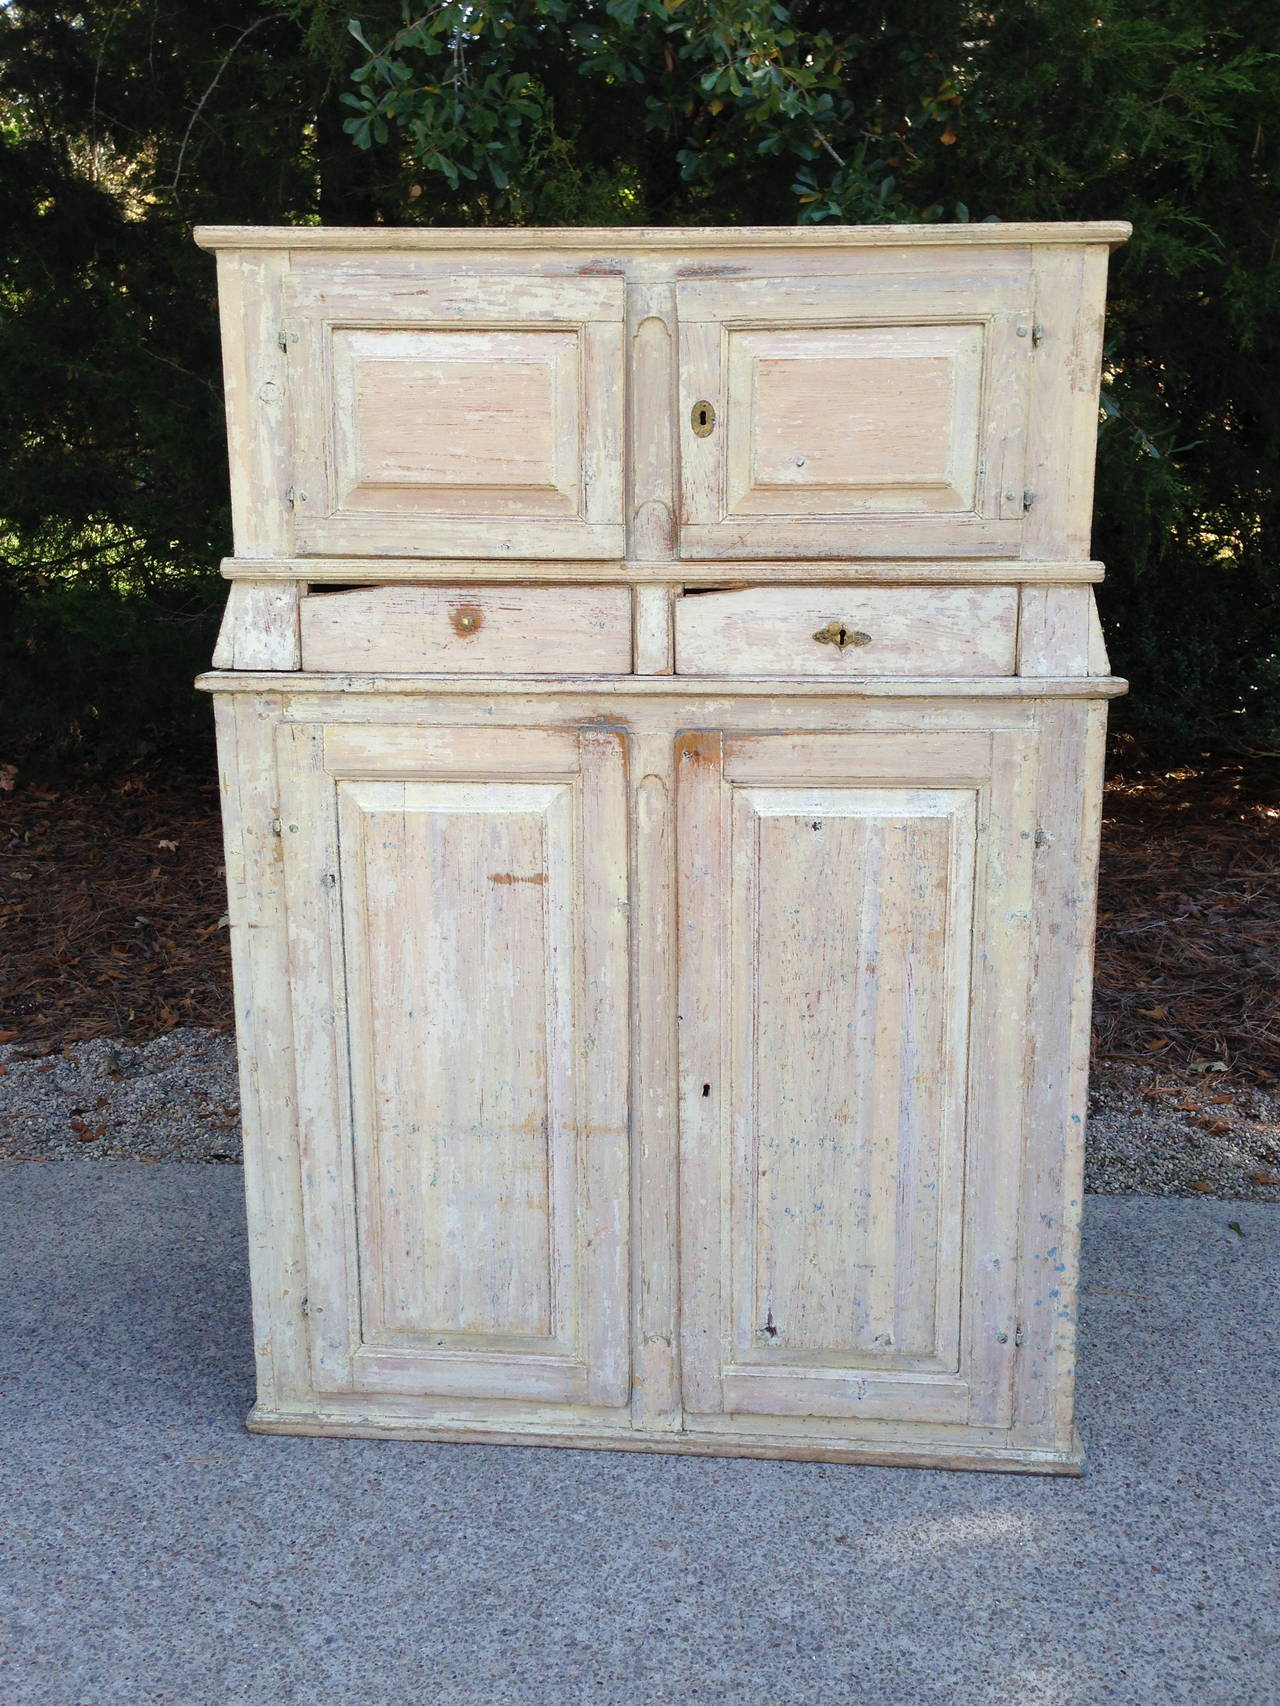 Lovely patinated Swedish Cabinet with two upper drawers. Top detaches from Bottom Cabinet for easier transport.